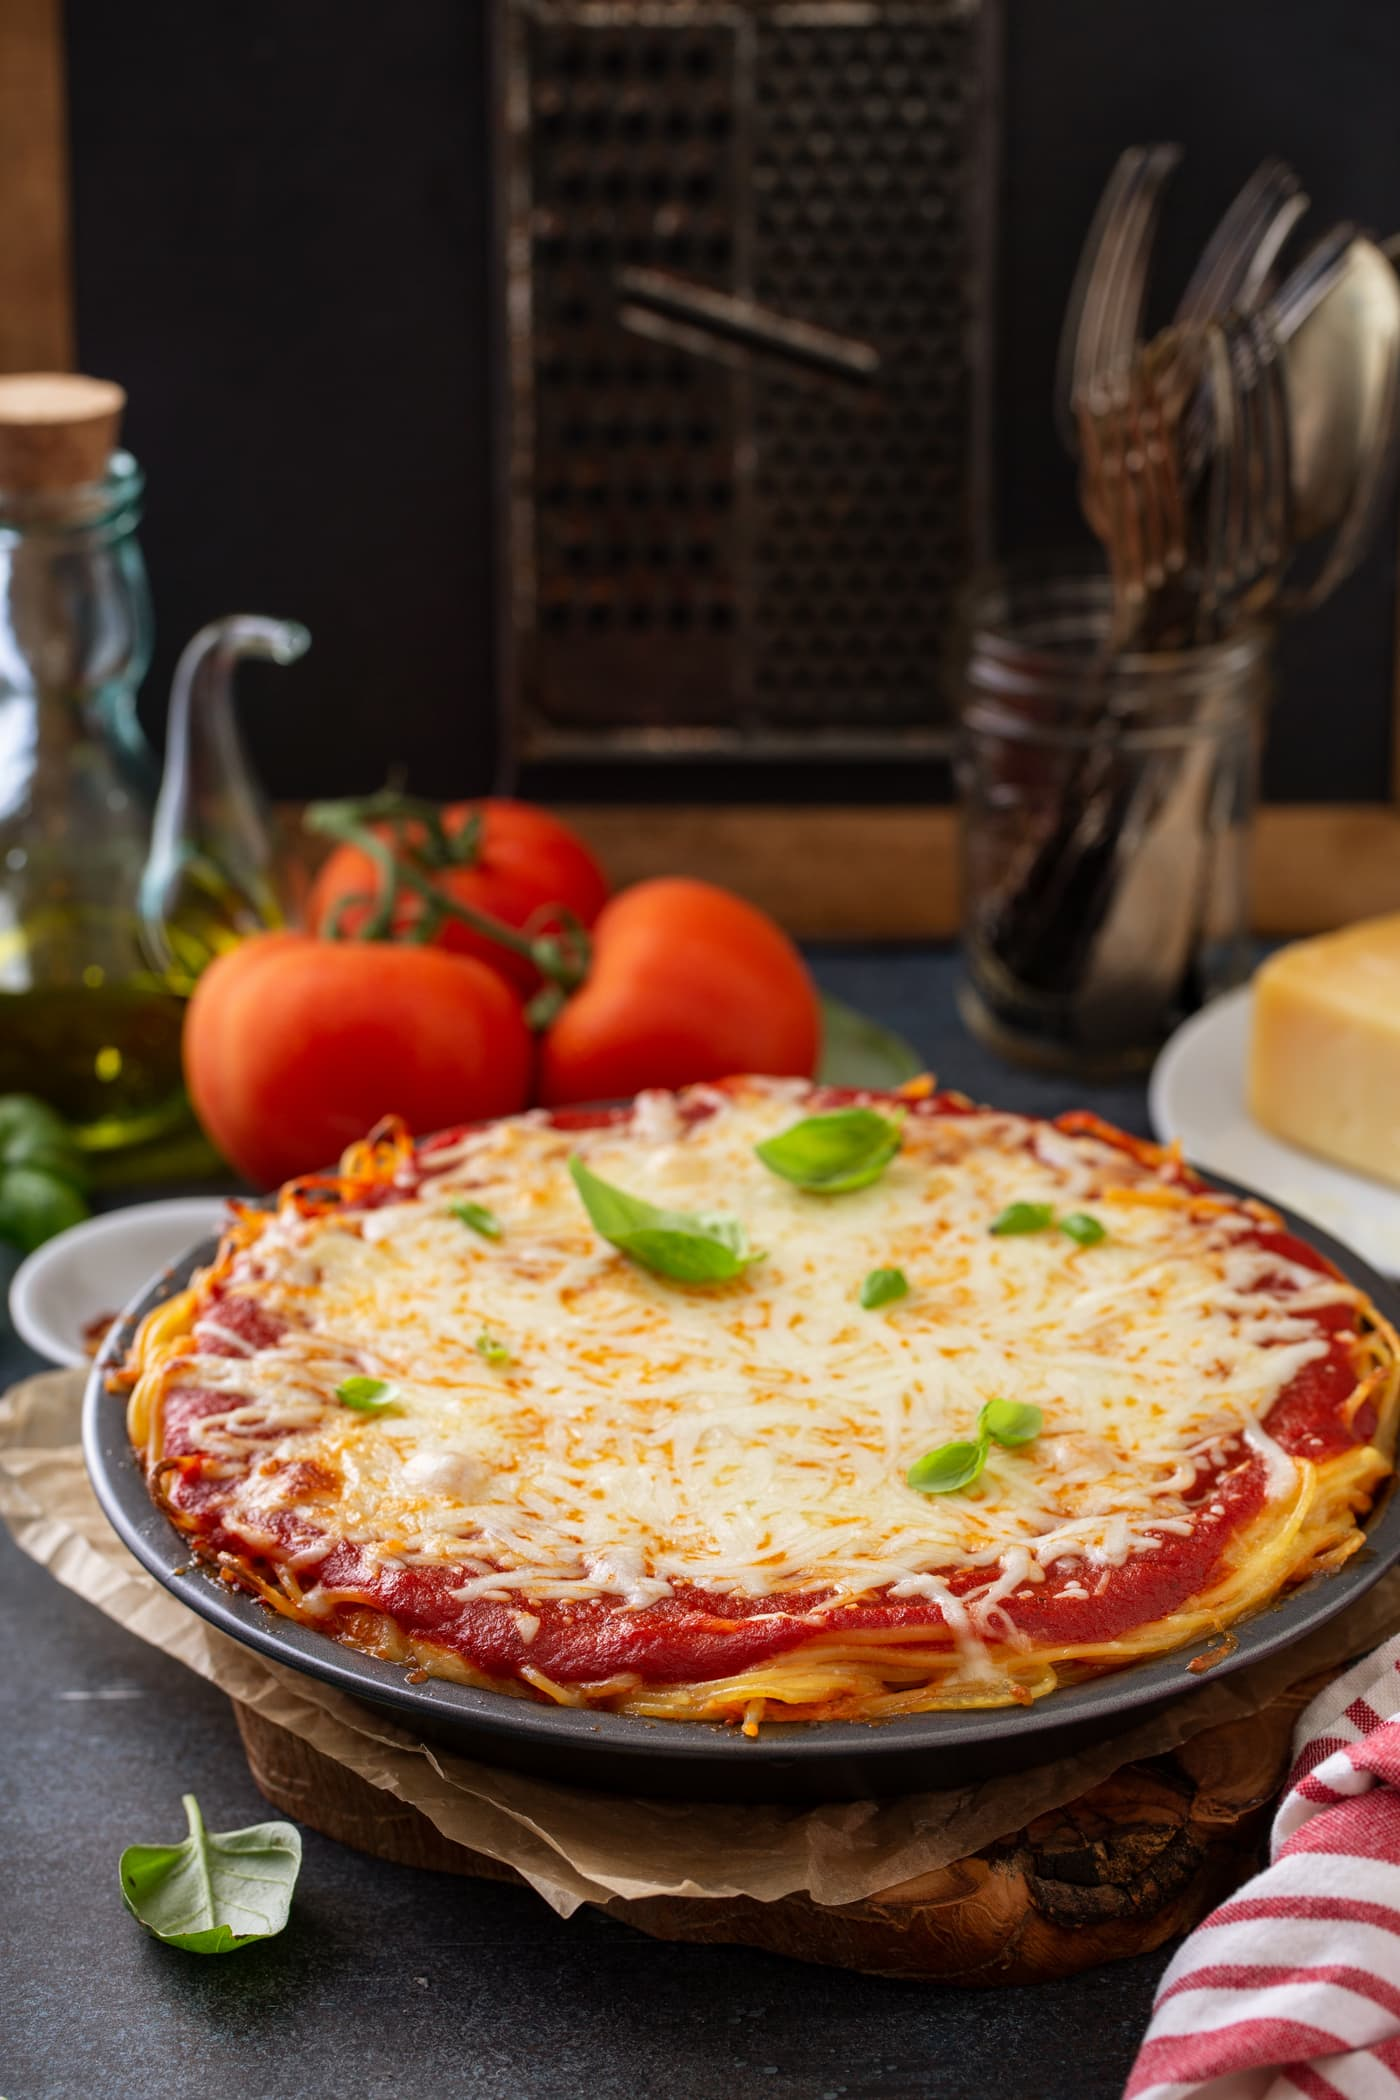 A pie dish filled with baked spaghetti pie. There are layers of spaghetti noodles, spaghetti sauce and melted cheeses. There are a few basil leaves on top and three tomatoes, olive oil, cheese, and a jar of forks in the background.